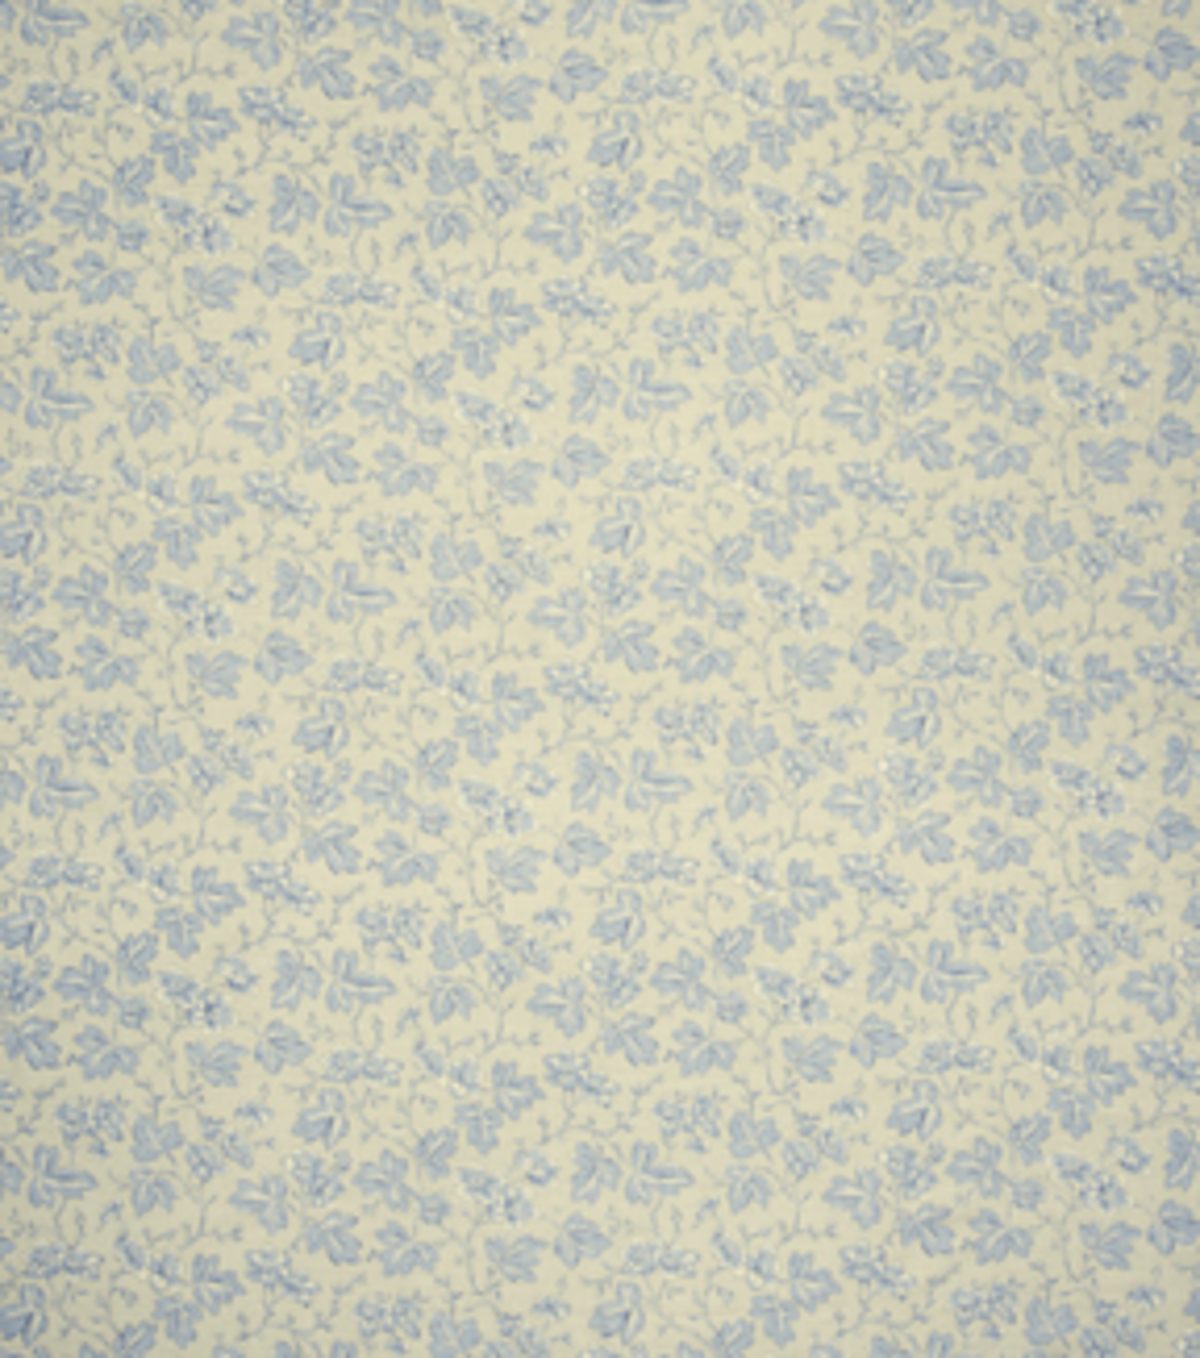 Home Decor 8\u0022x8\u0022 Fabric Swatch-French General Deborah Bleu